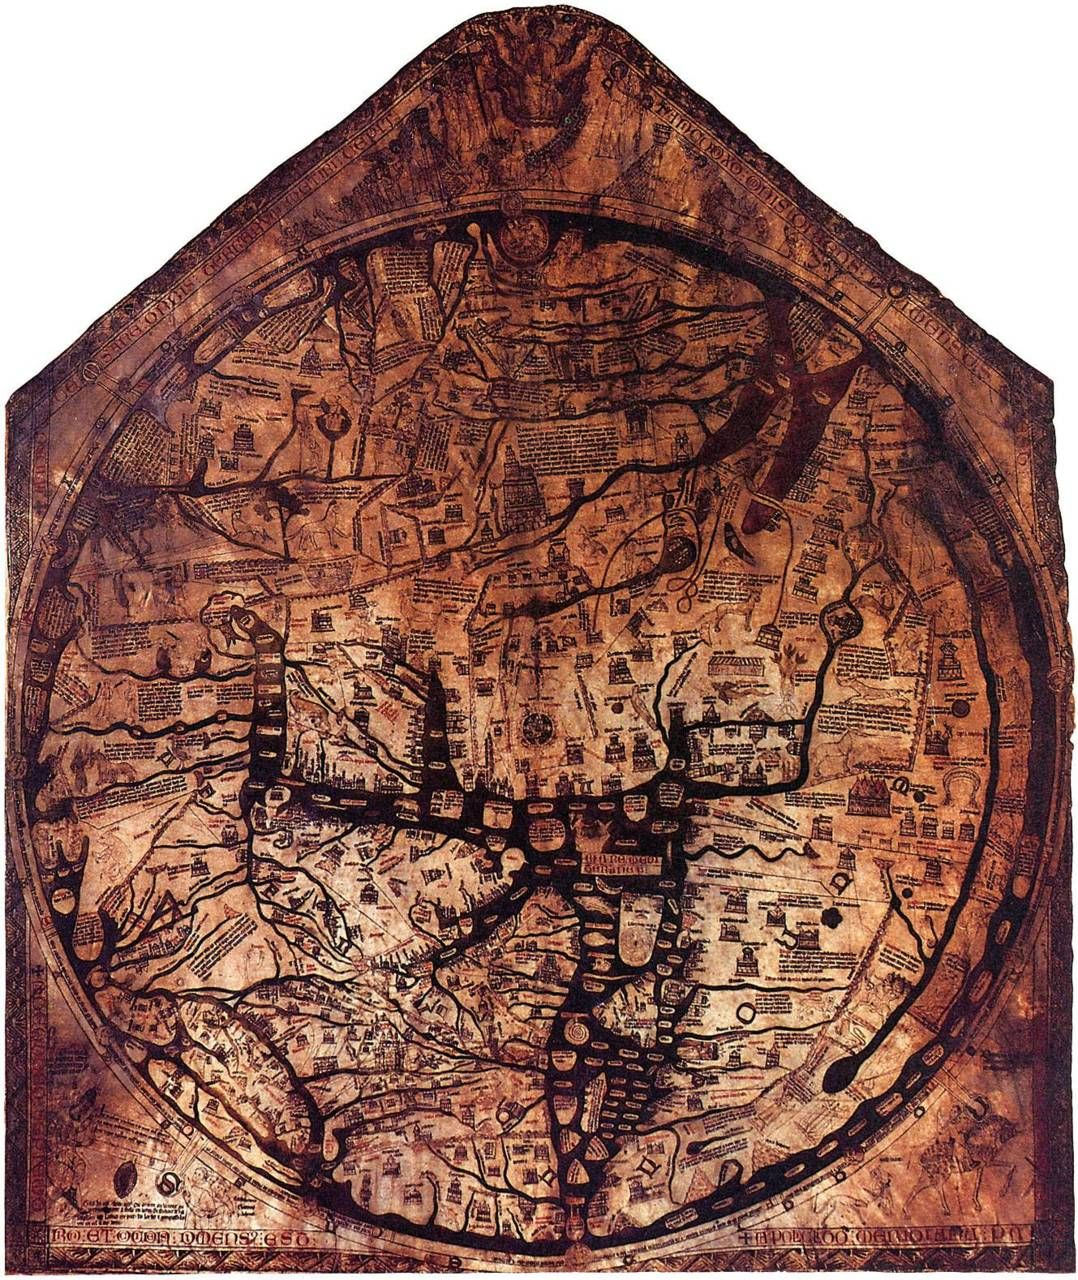 Hereford Mappa Mundi - the largest intact Medieval wall map in the world and its ambition is breathtaking – to picture all of human knowledge in a single image.